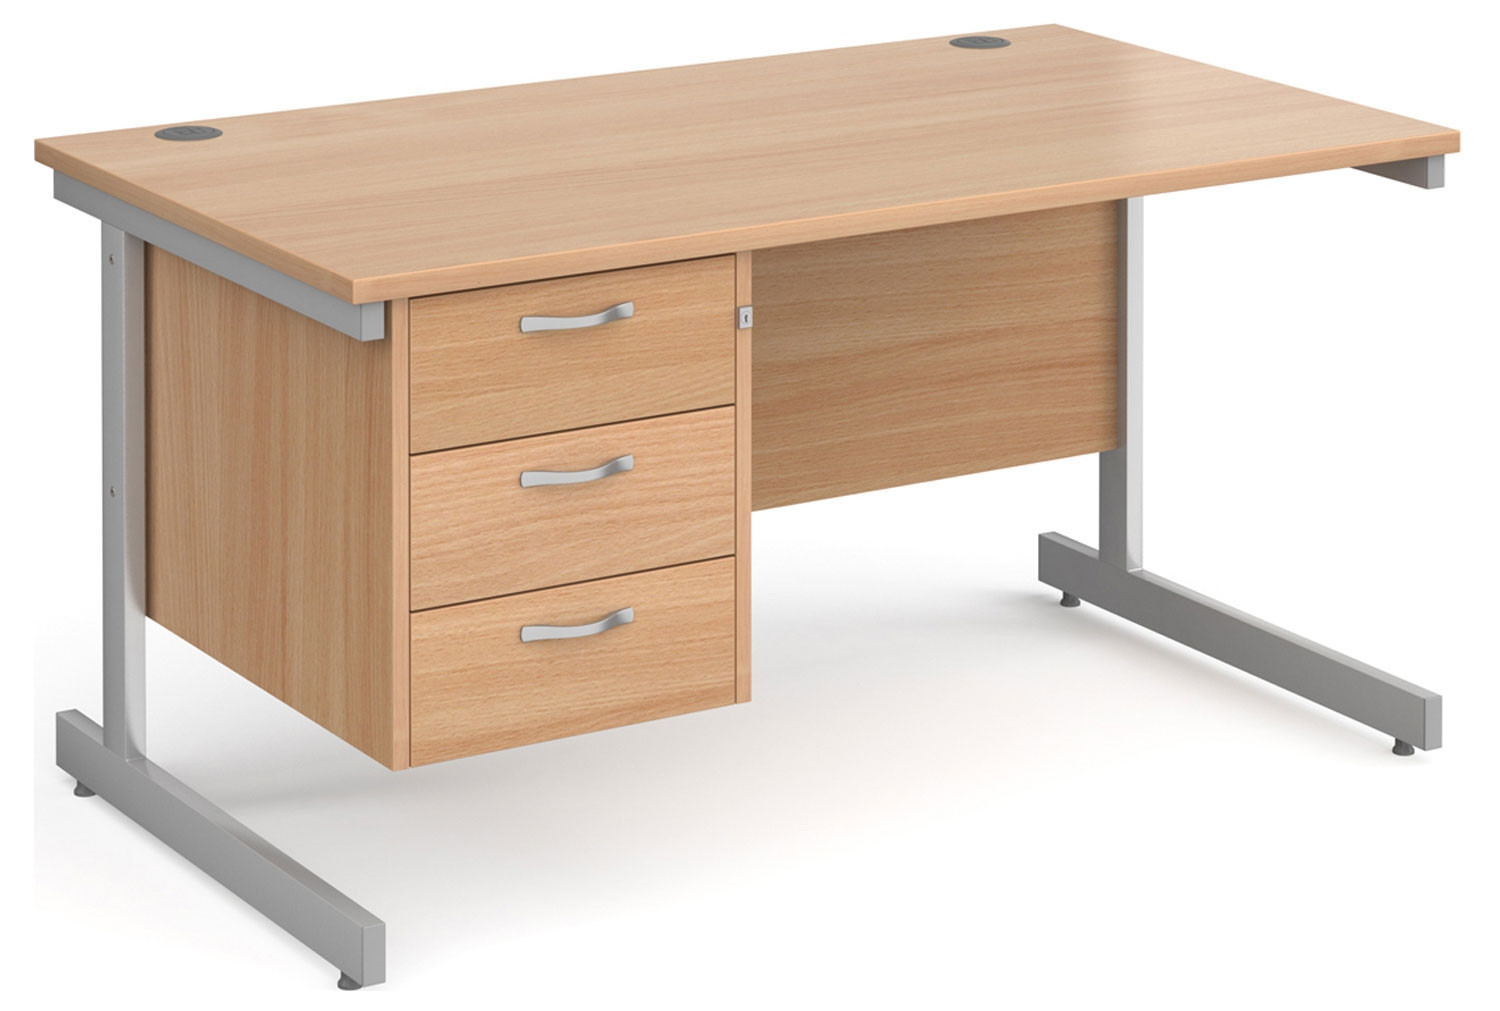 Next-Day Tully I Rectangular Desk 3 Drawers